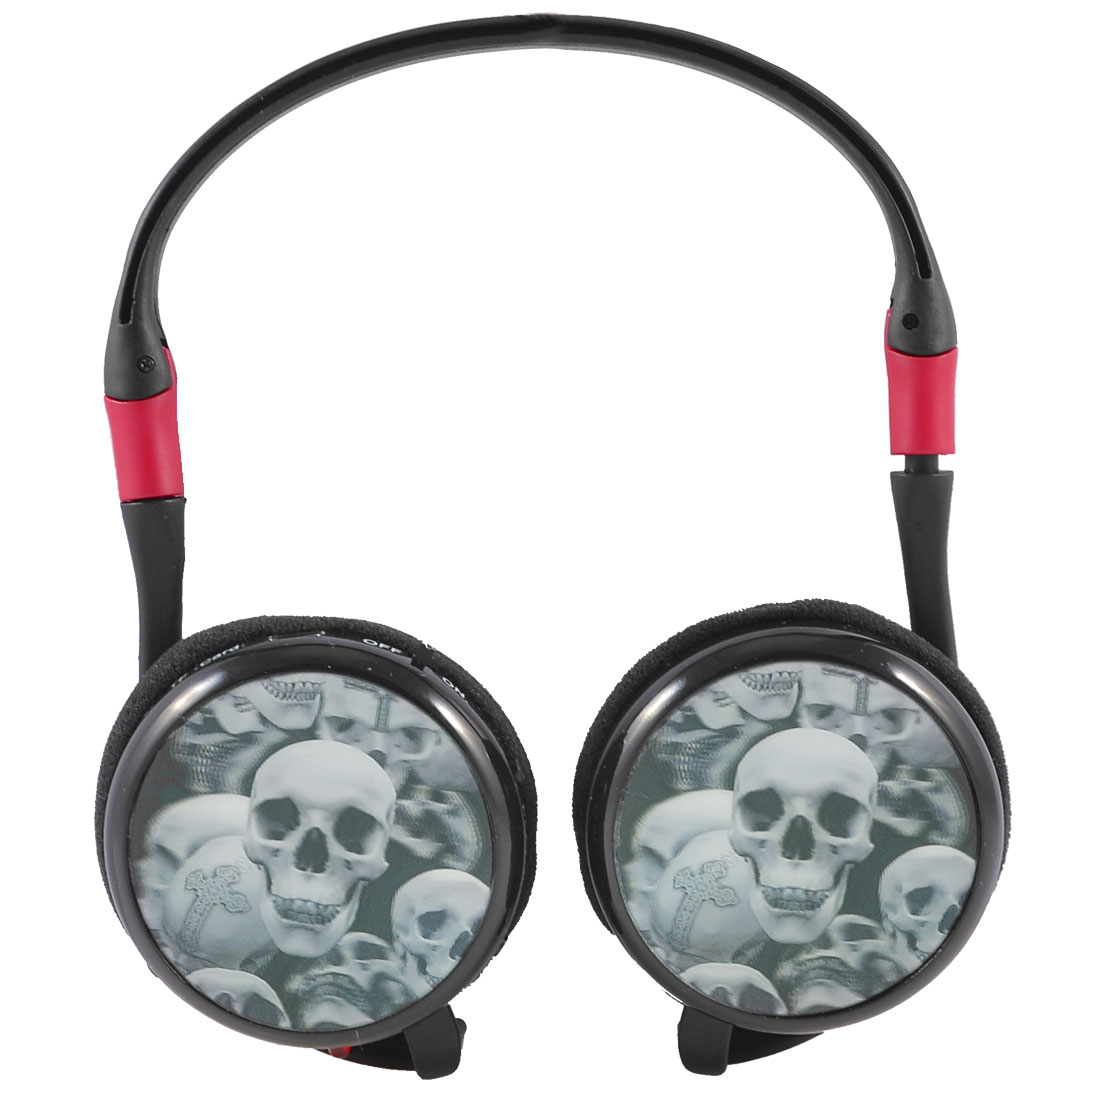 3D Skull Pattern TF Card MP3 Player FM Radio Stereo Headset Headphone Black Red